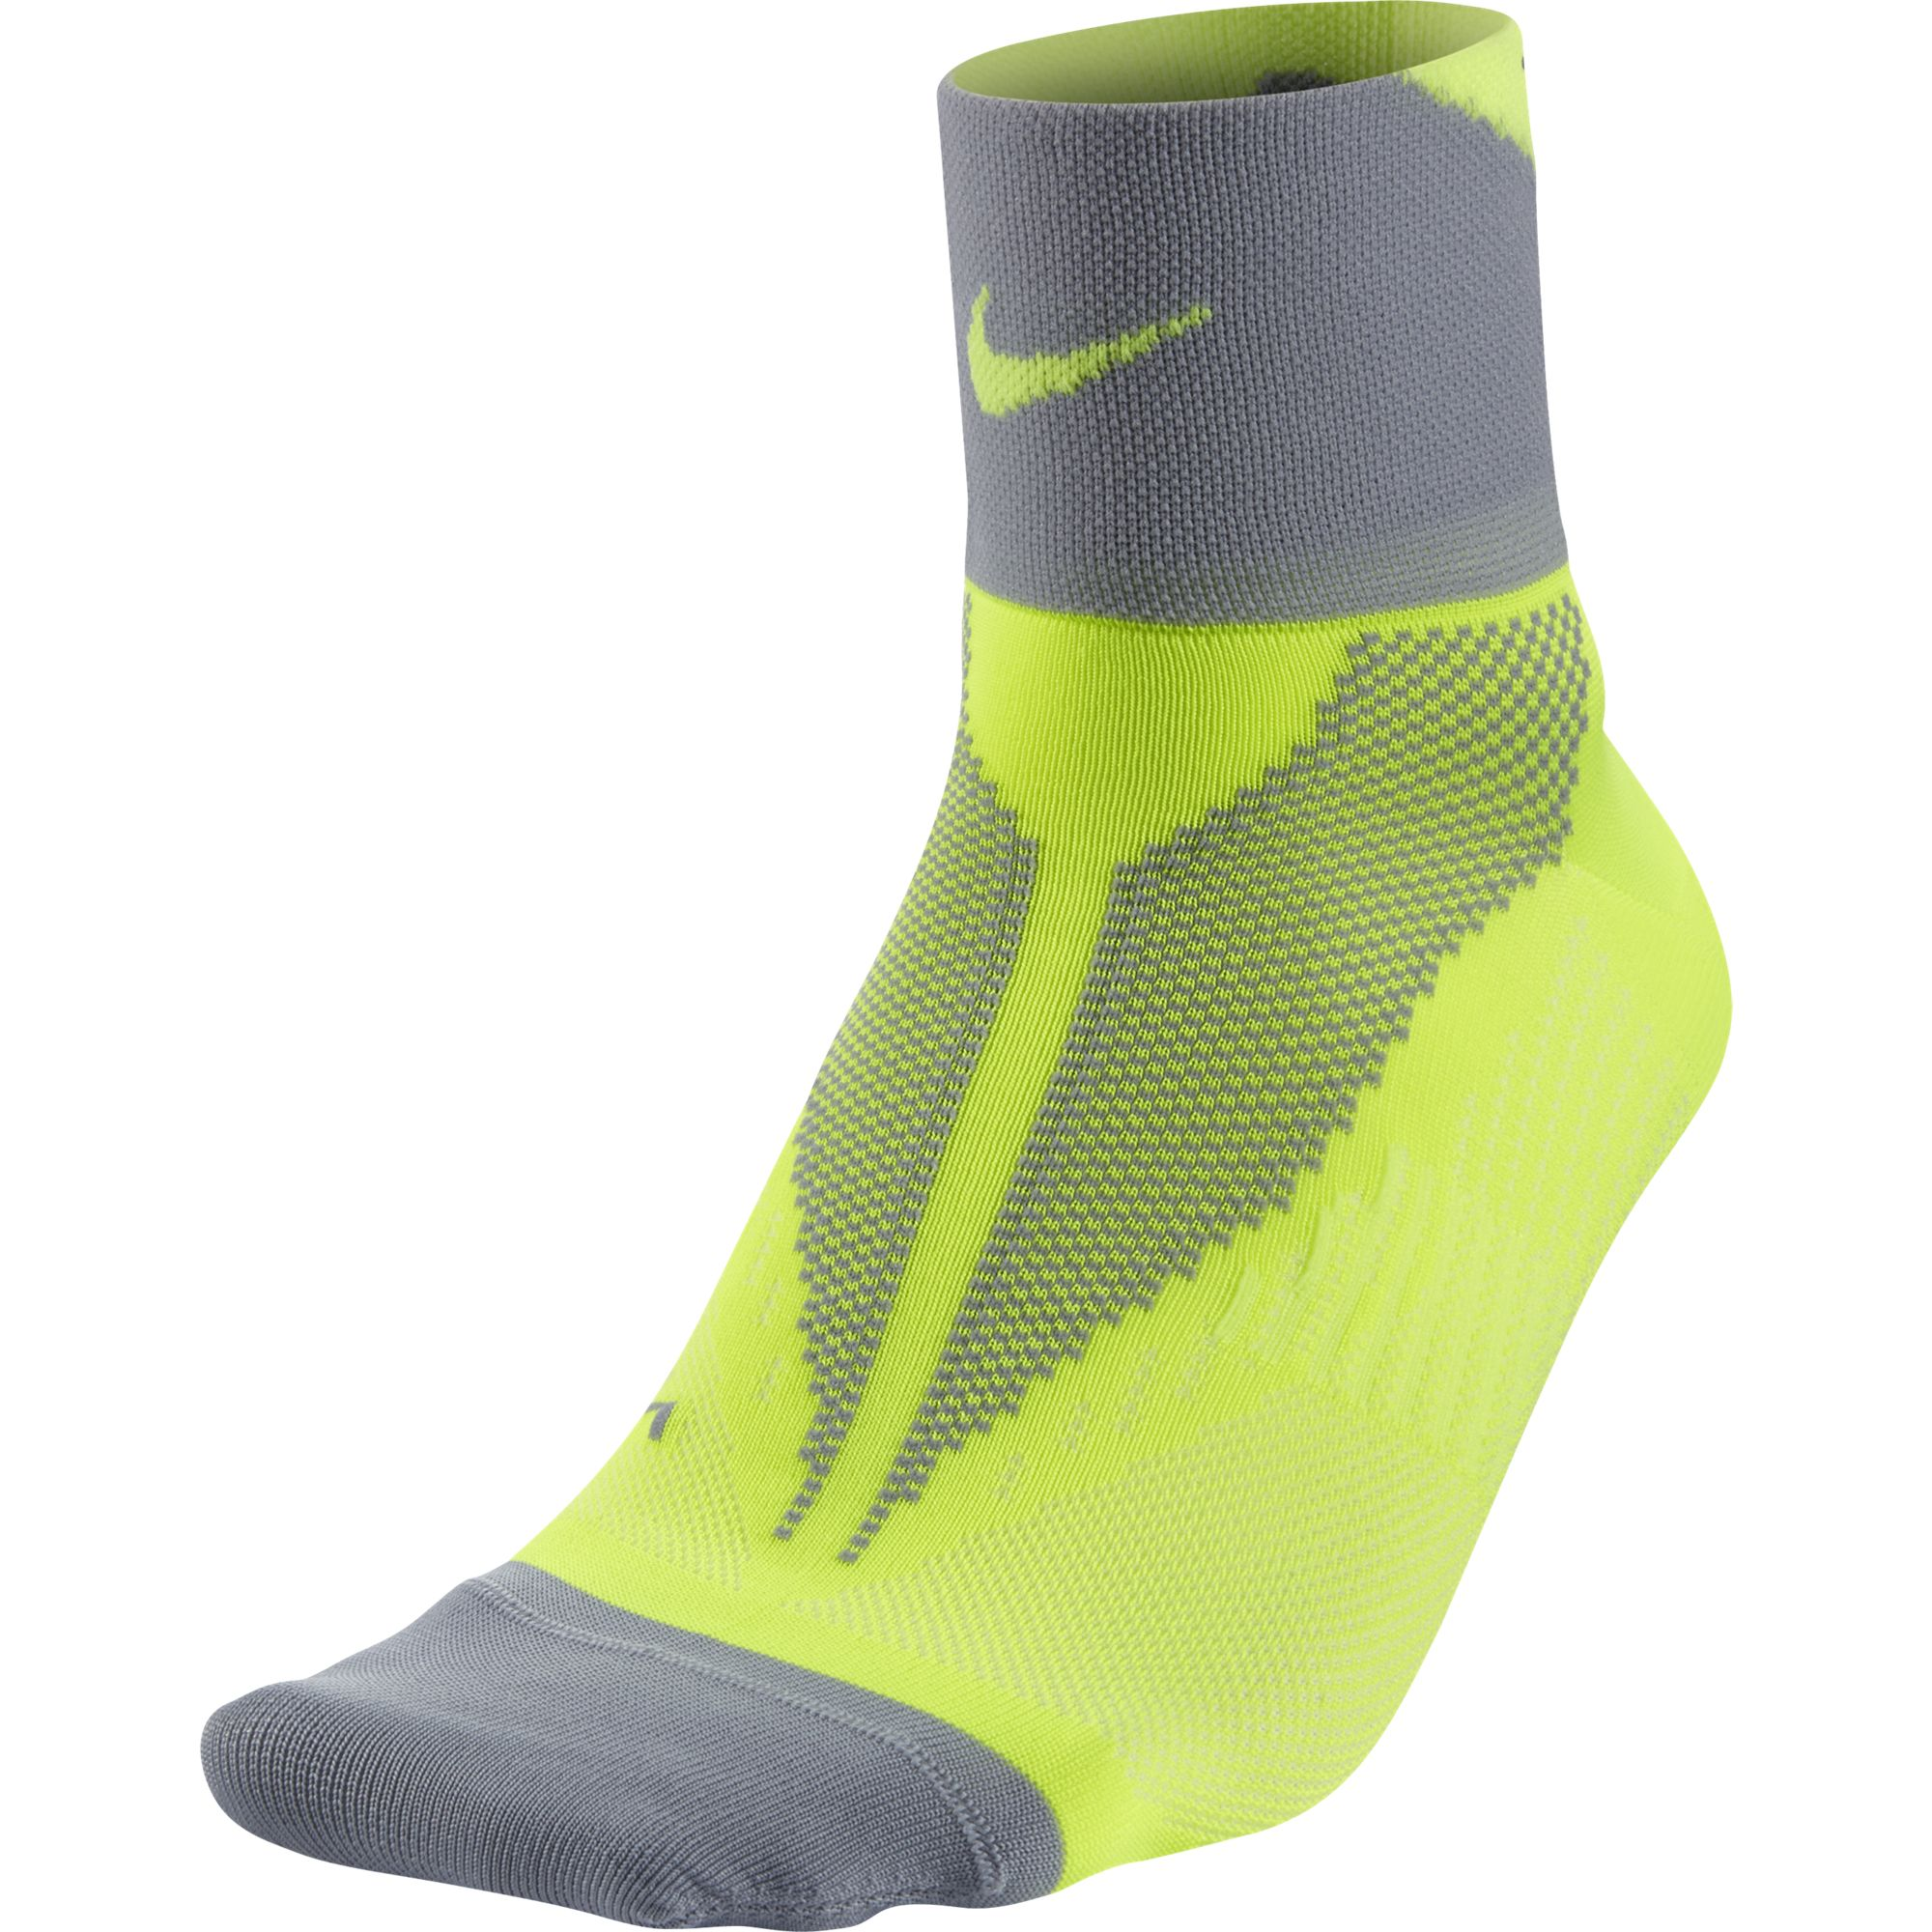 Nike Носки Nike Elite Run Lightwght Quarter, 1 пара чулок д щитков nike guard lock elite sleeve su12 se0173 011 m чёрный